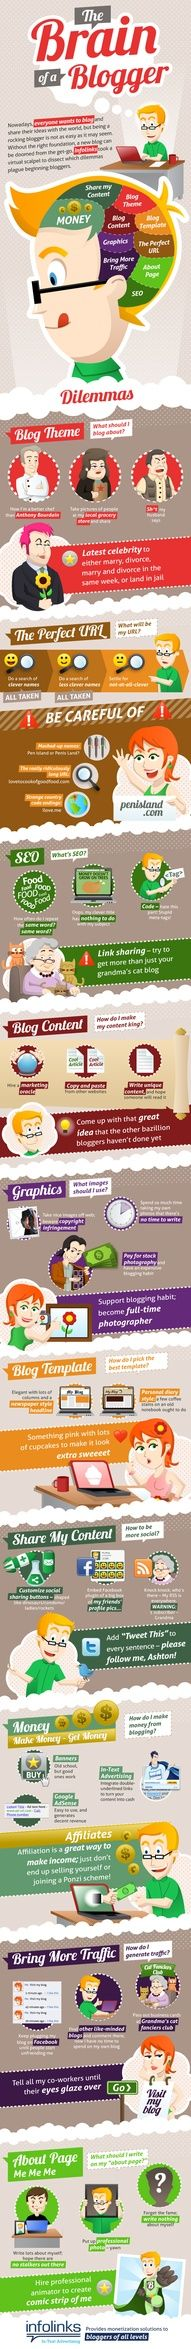 Tips for better content